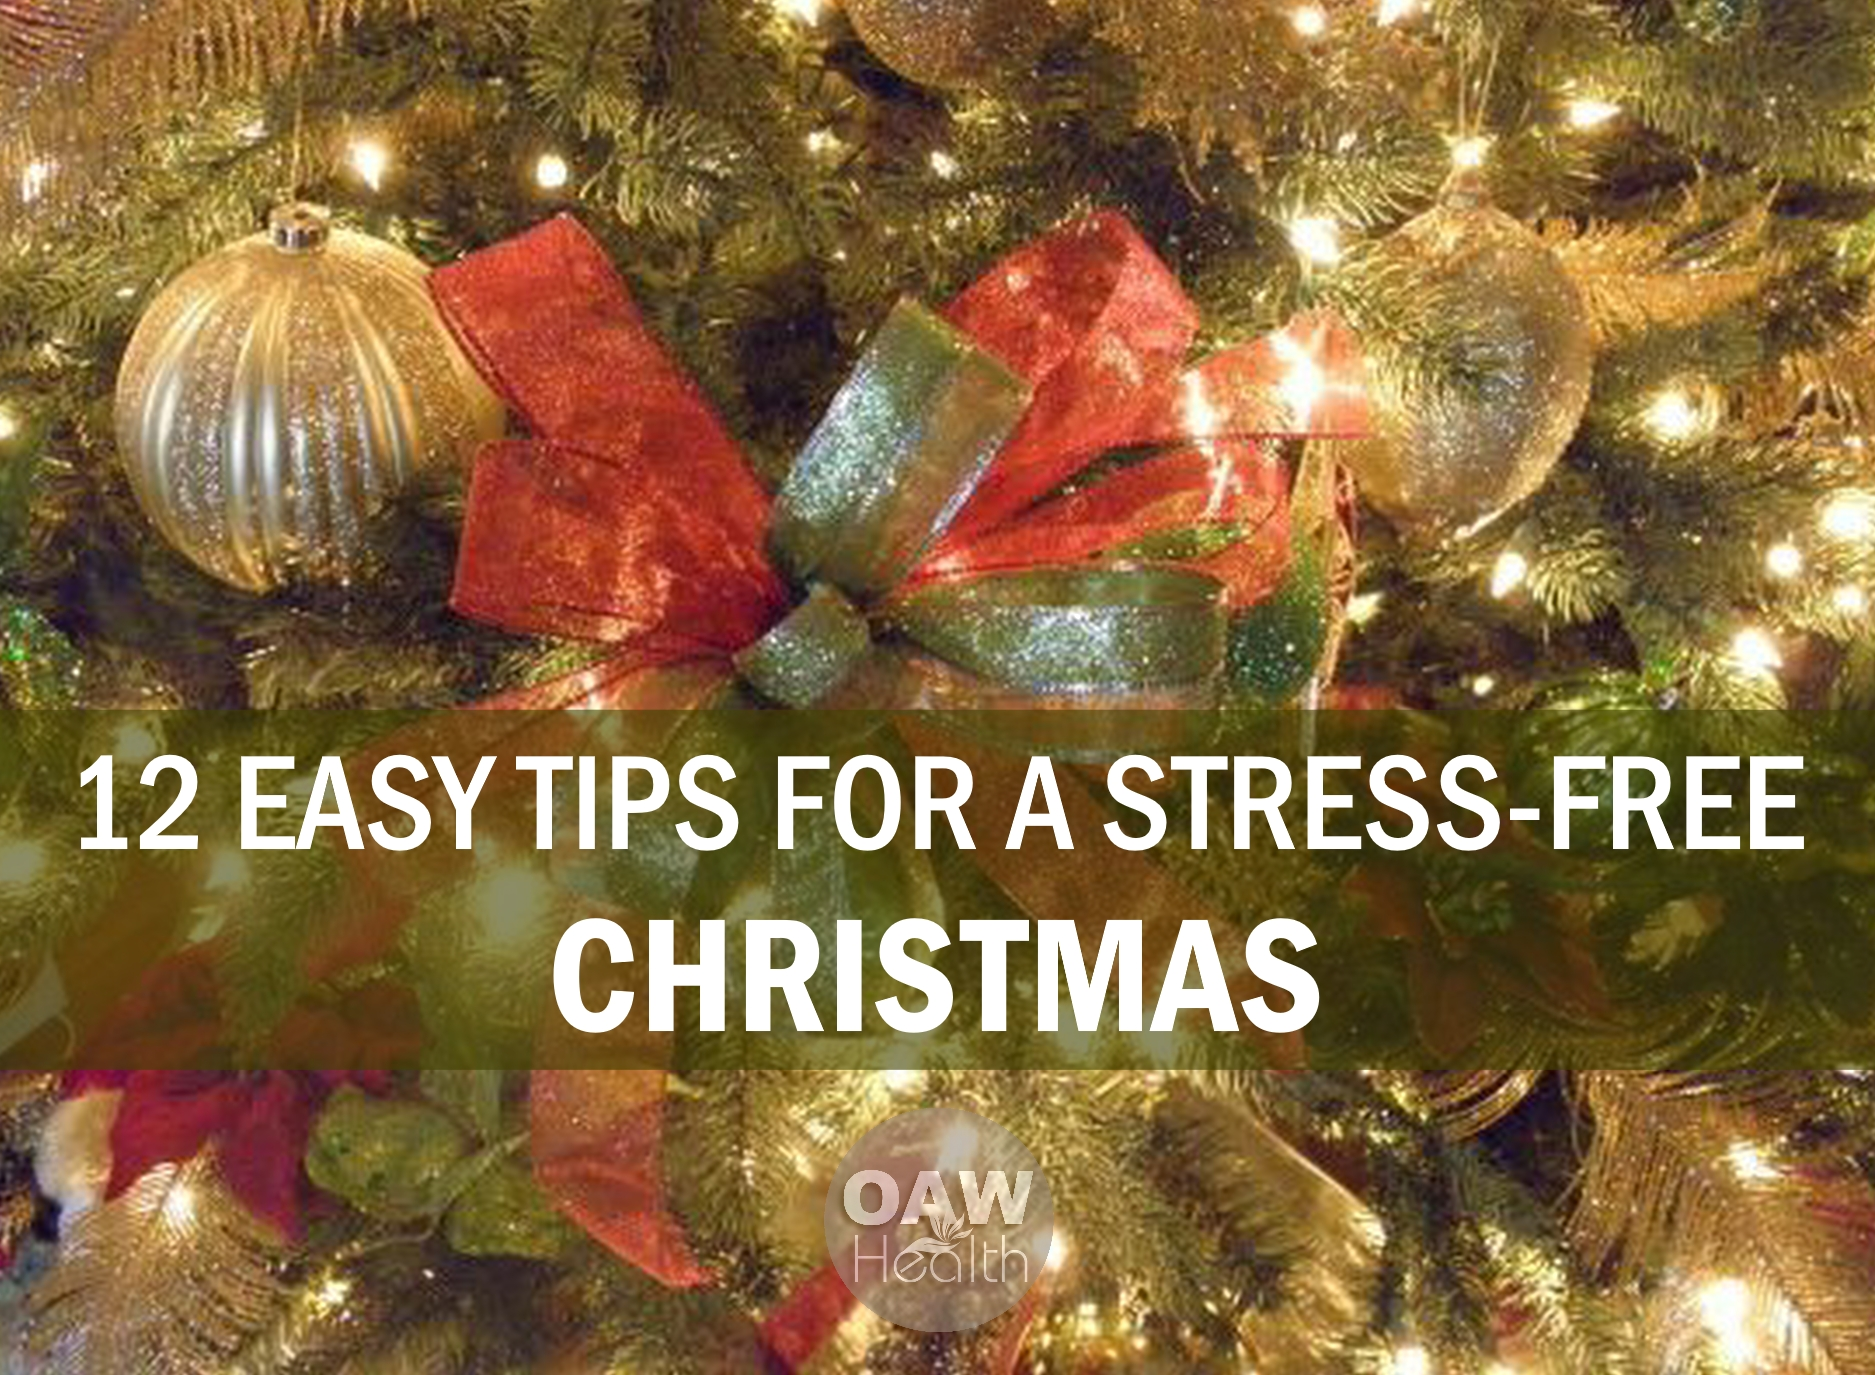 12 Easy Tips for a Stress-Free Christmas